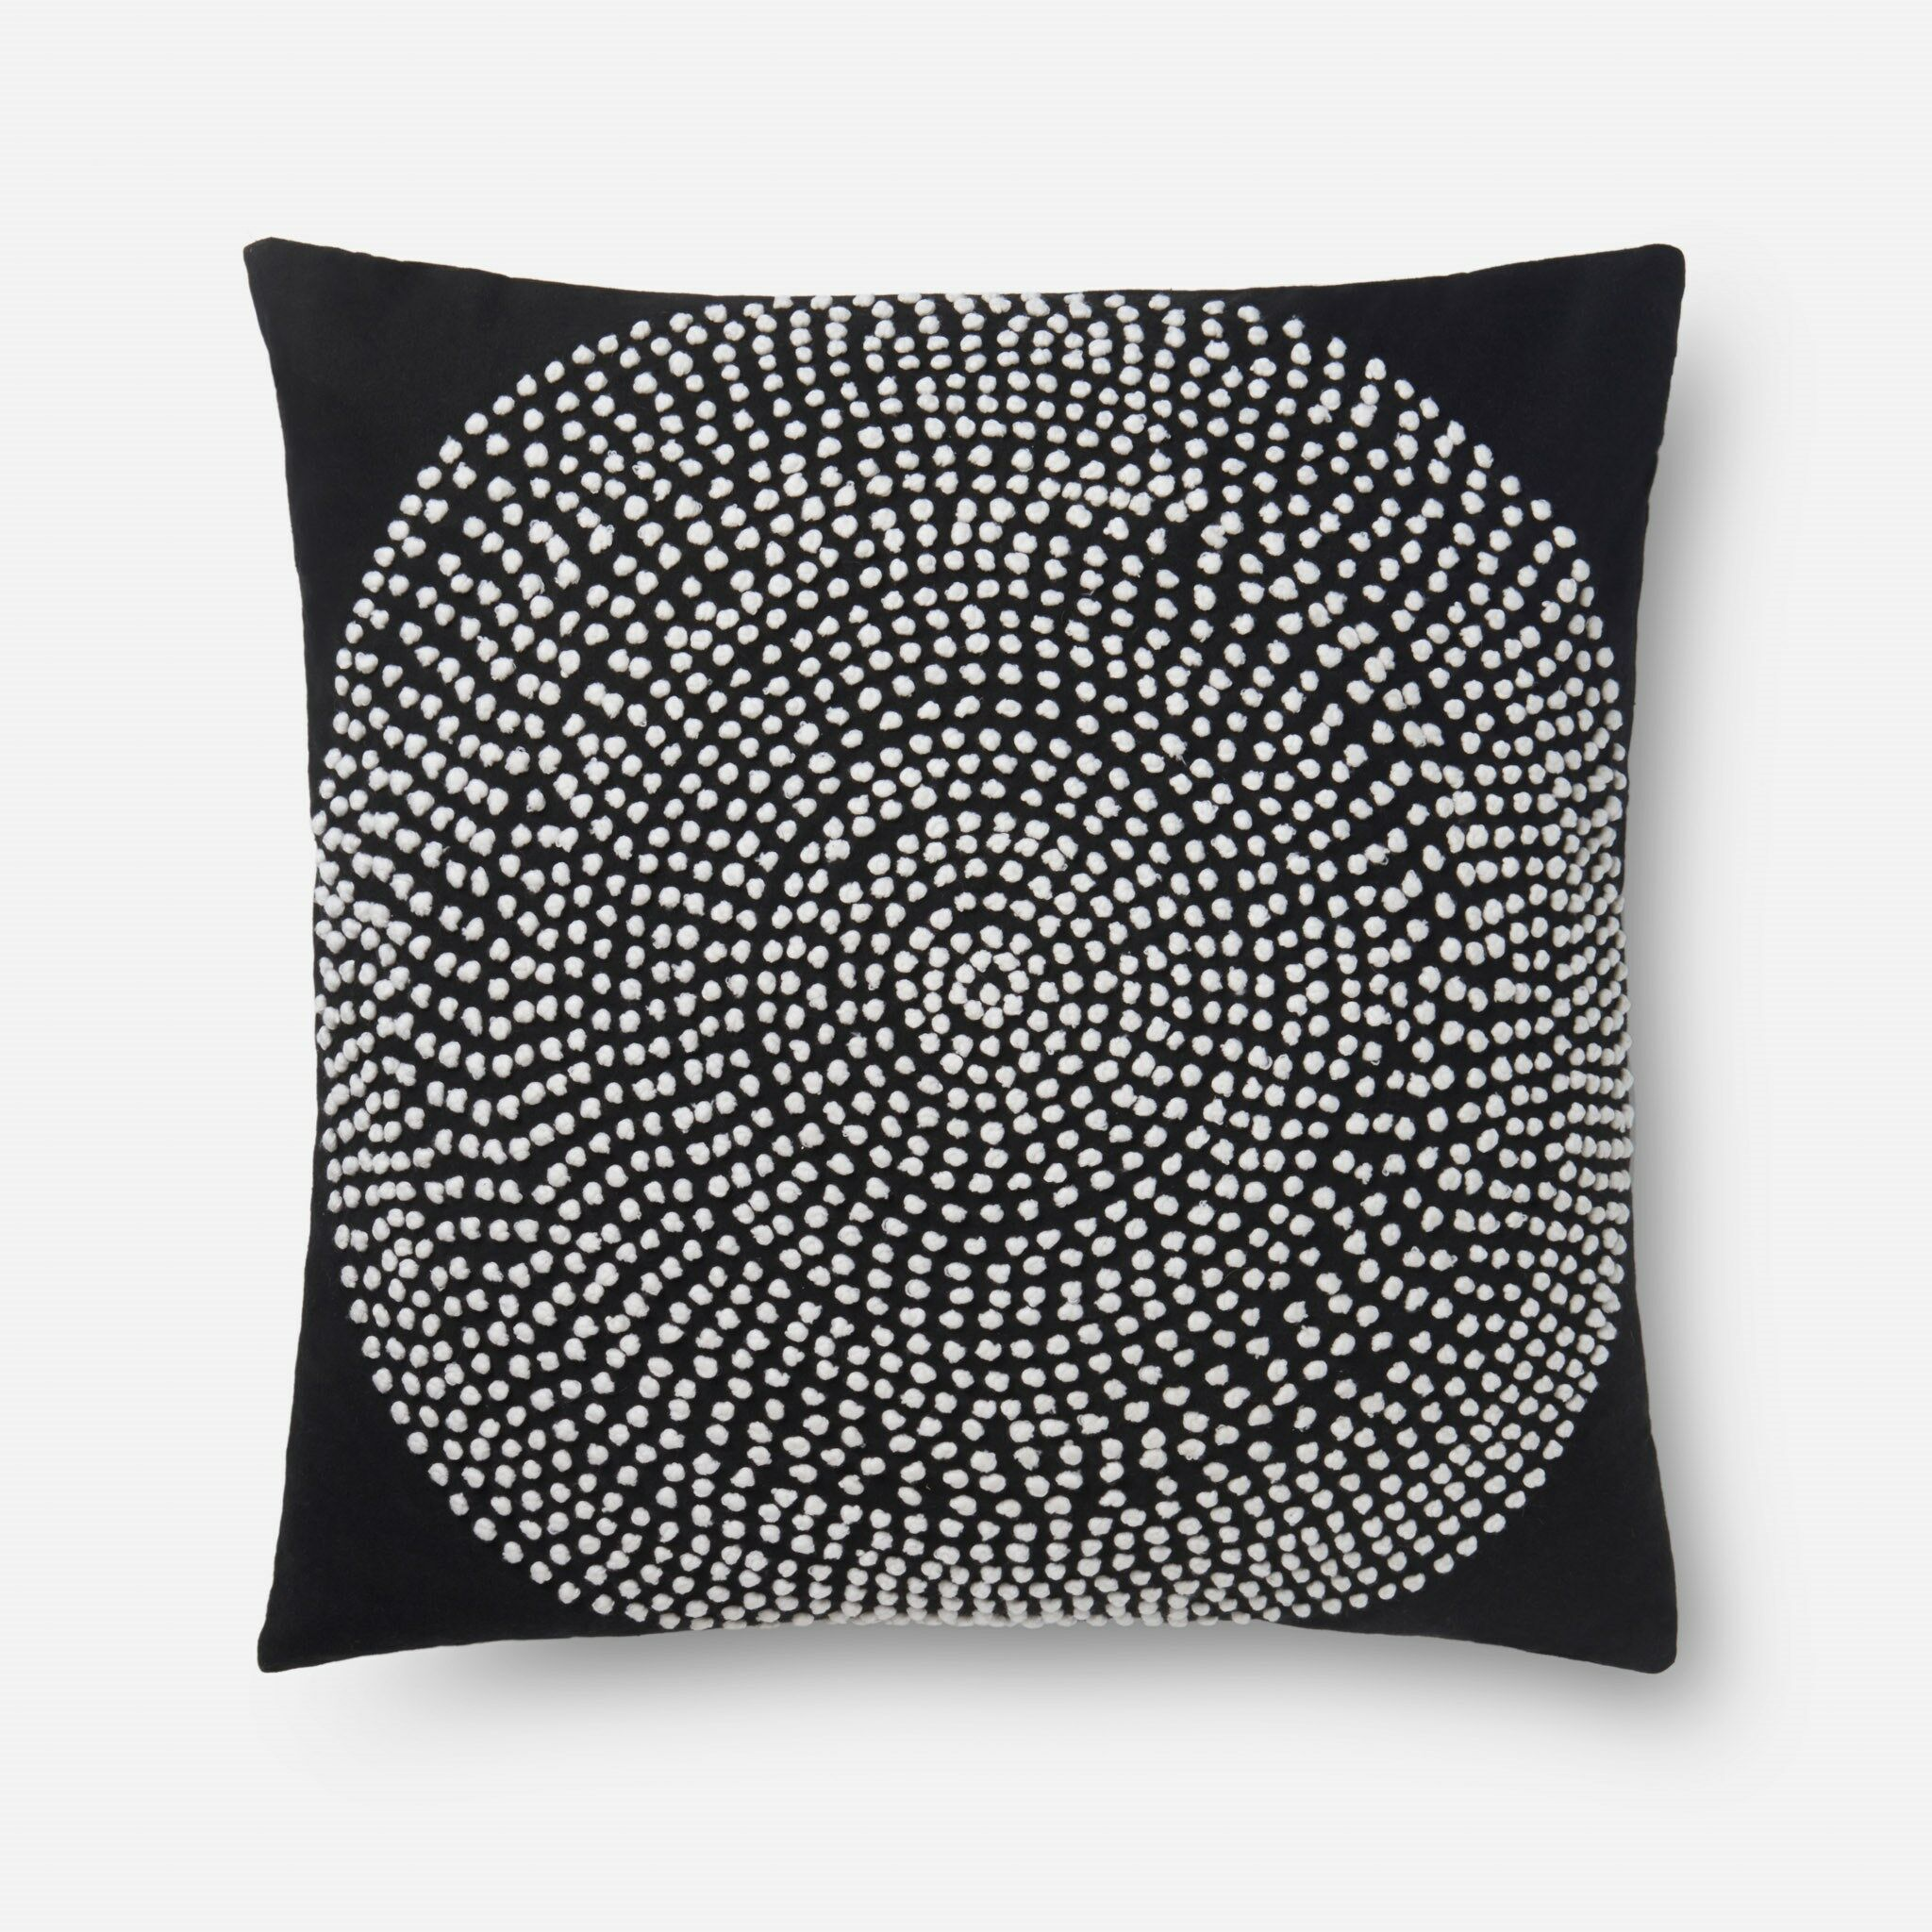 100% Cotton Pillow Color: Black, Fill Material: Polyester, Type: Throw Pillow